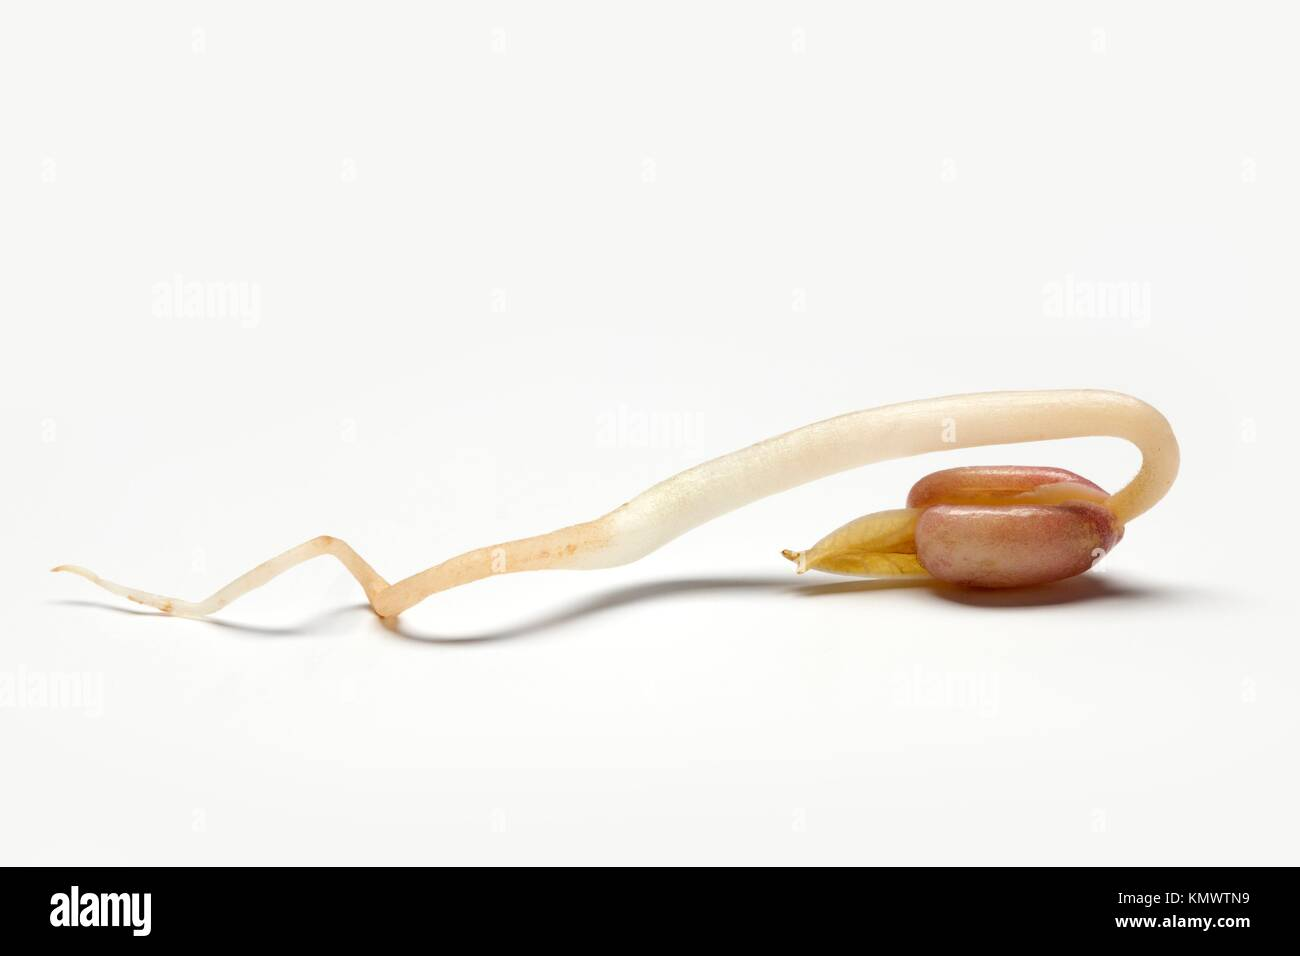 One whole bean sprout, seedling close up - Stock Image